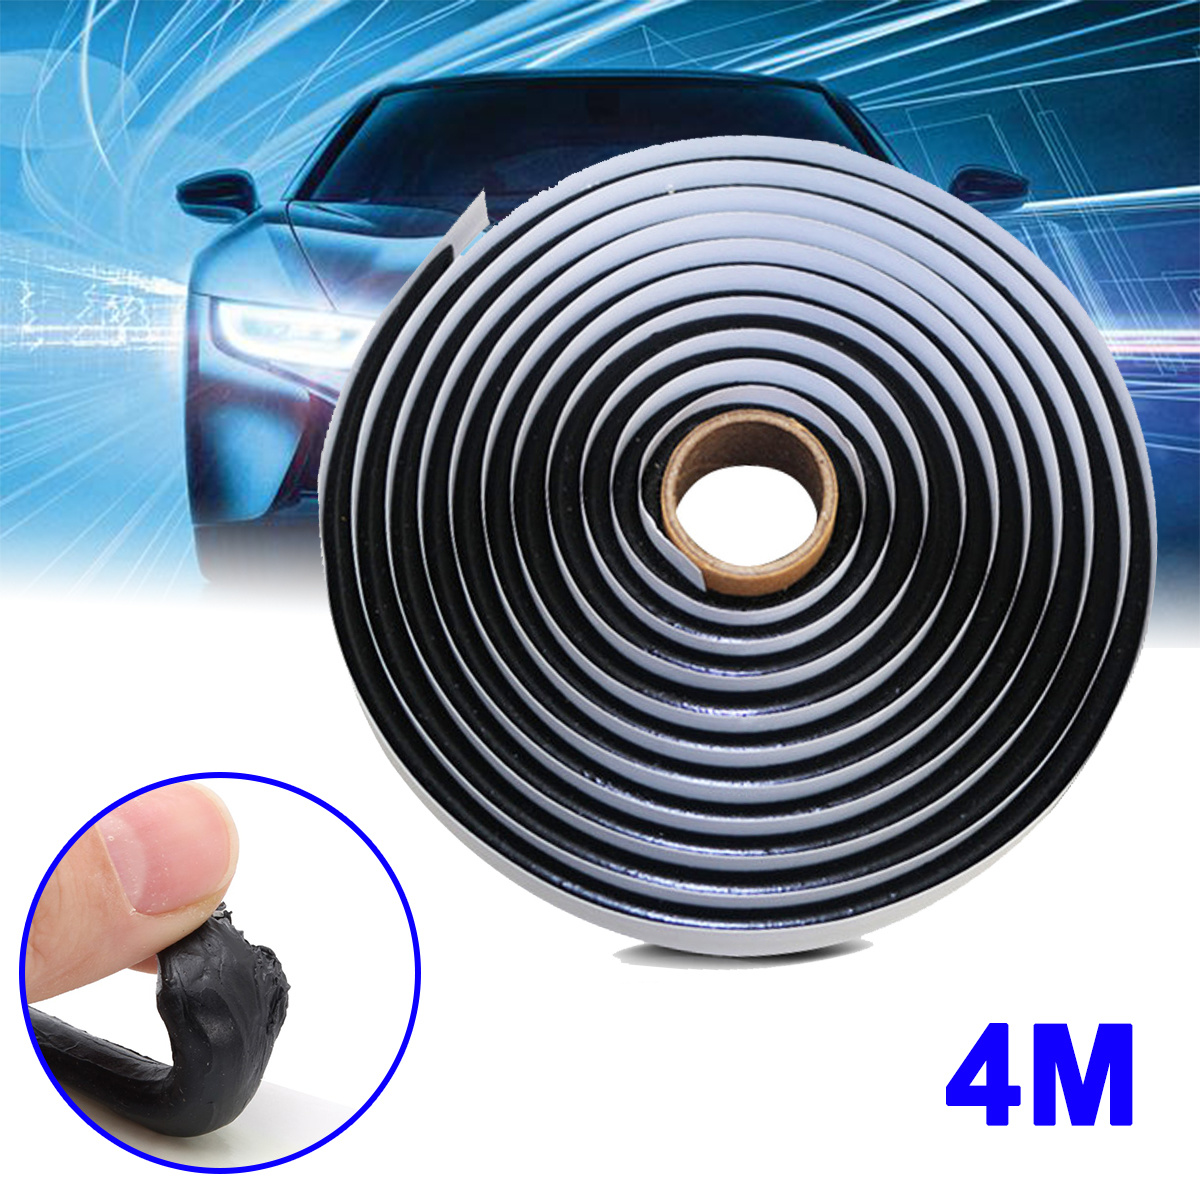 4M Black Butyl Rubber Glue Sealant Car Truck Headlight LED Retrofit Reseal Strip